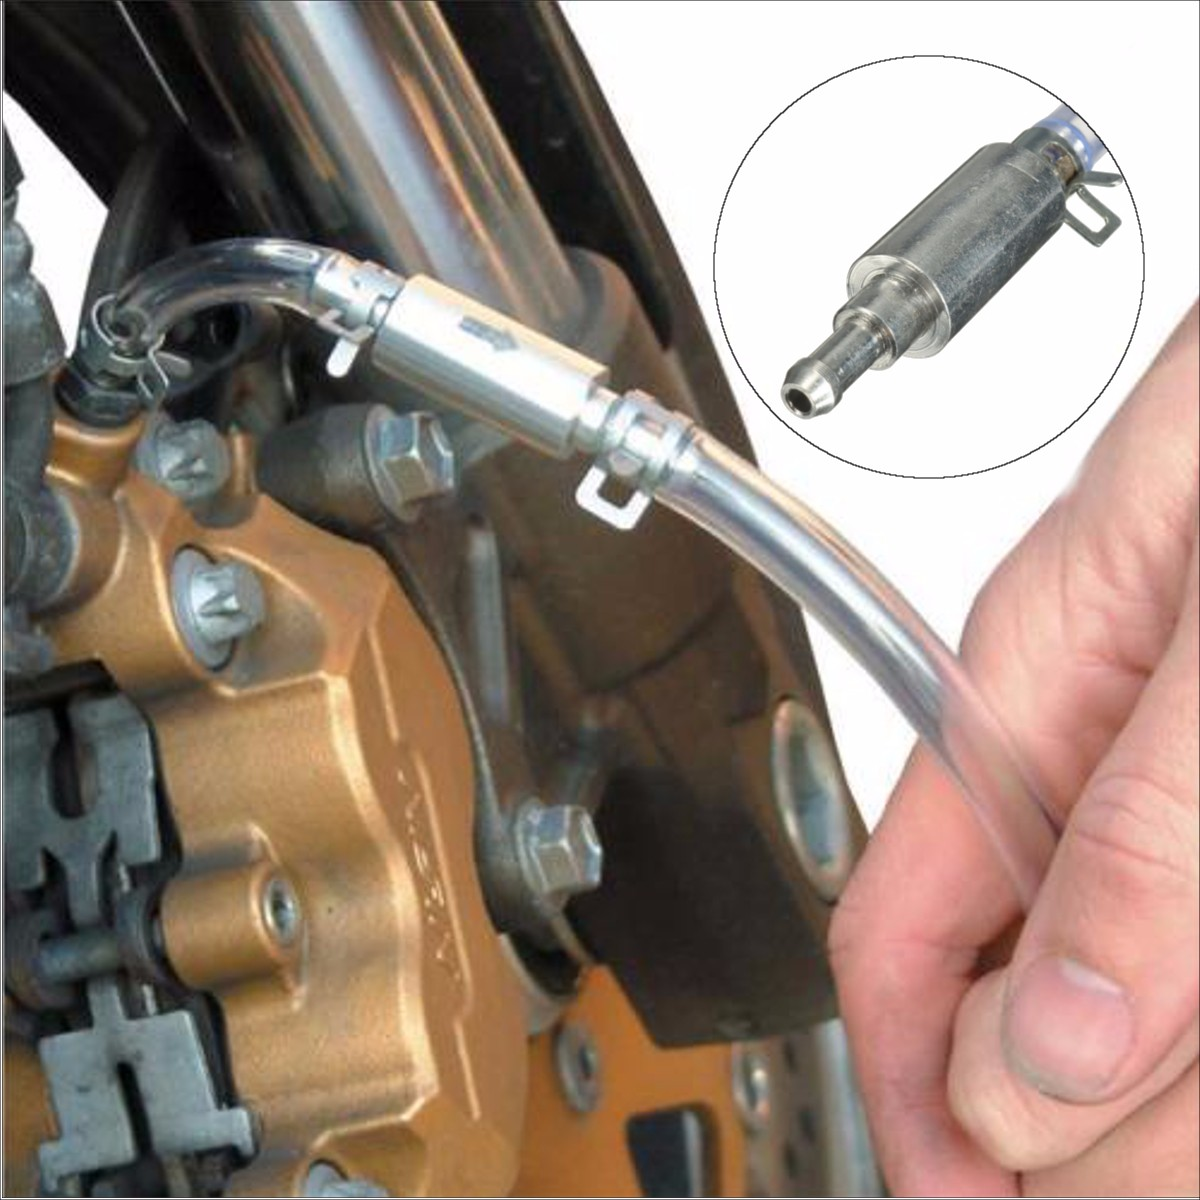 Car Hydraulic Brake Bleeder Clutch Tool Replacement Adapter Hose Kit Kit Auto Motorcycle Oil Pump Oil Bleeding